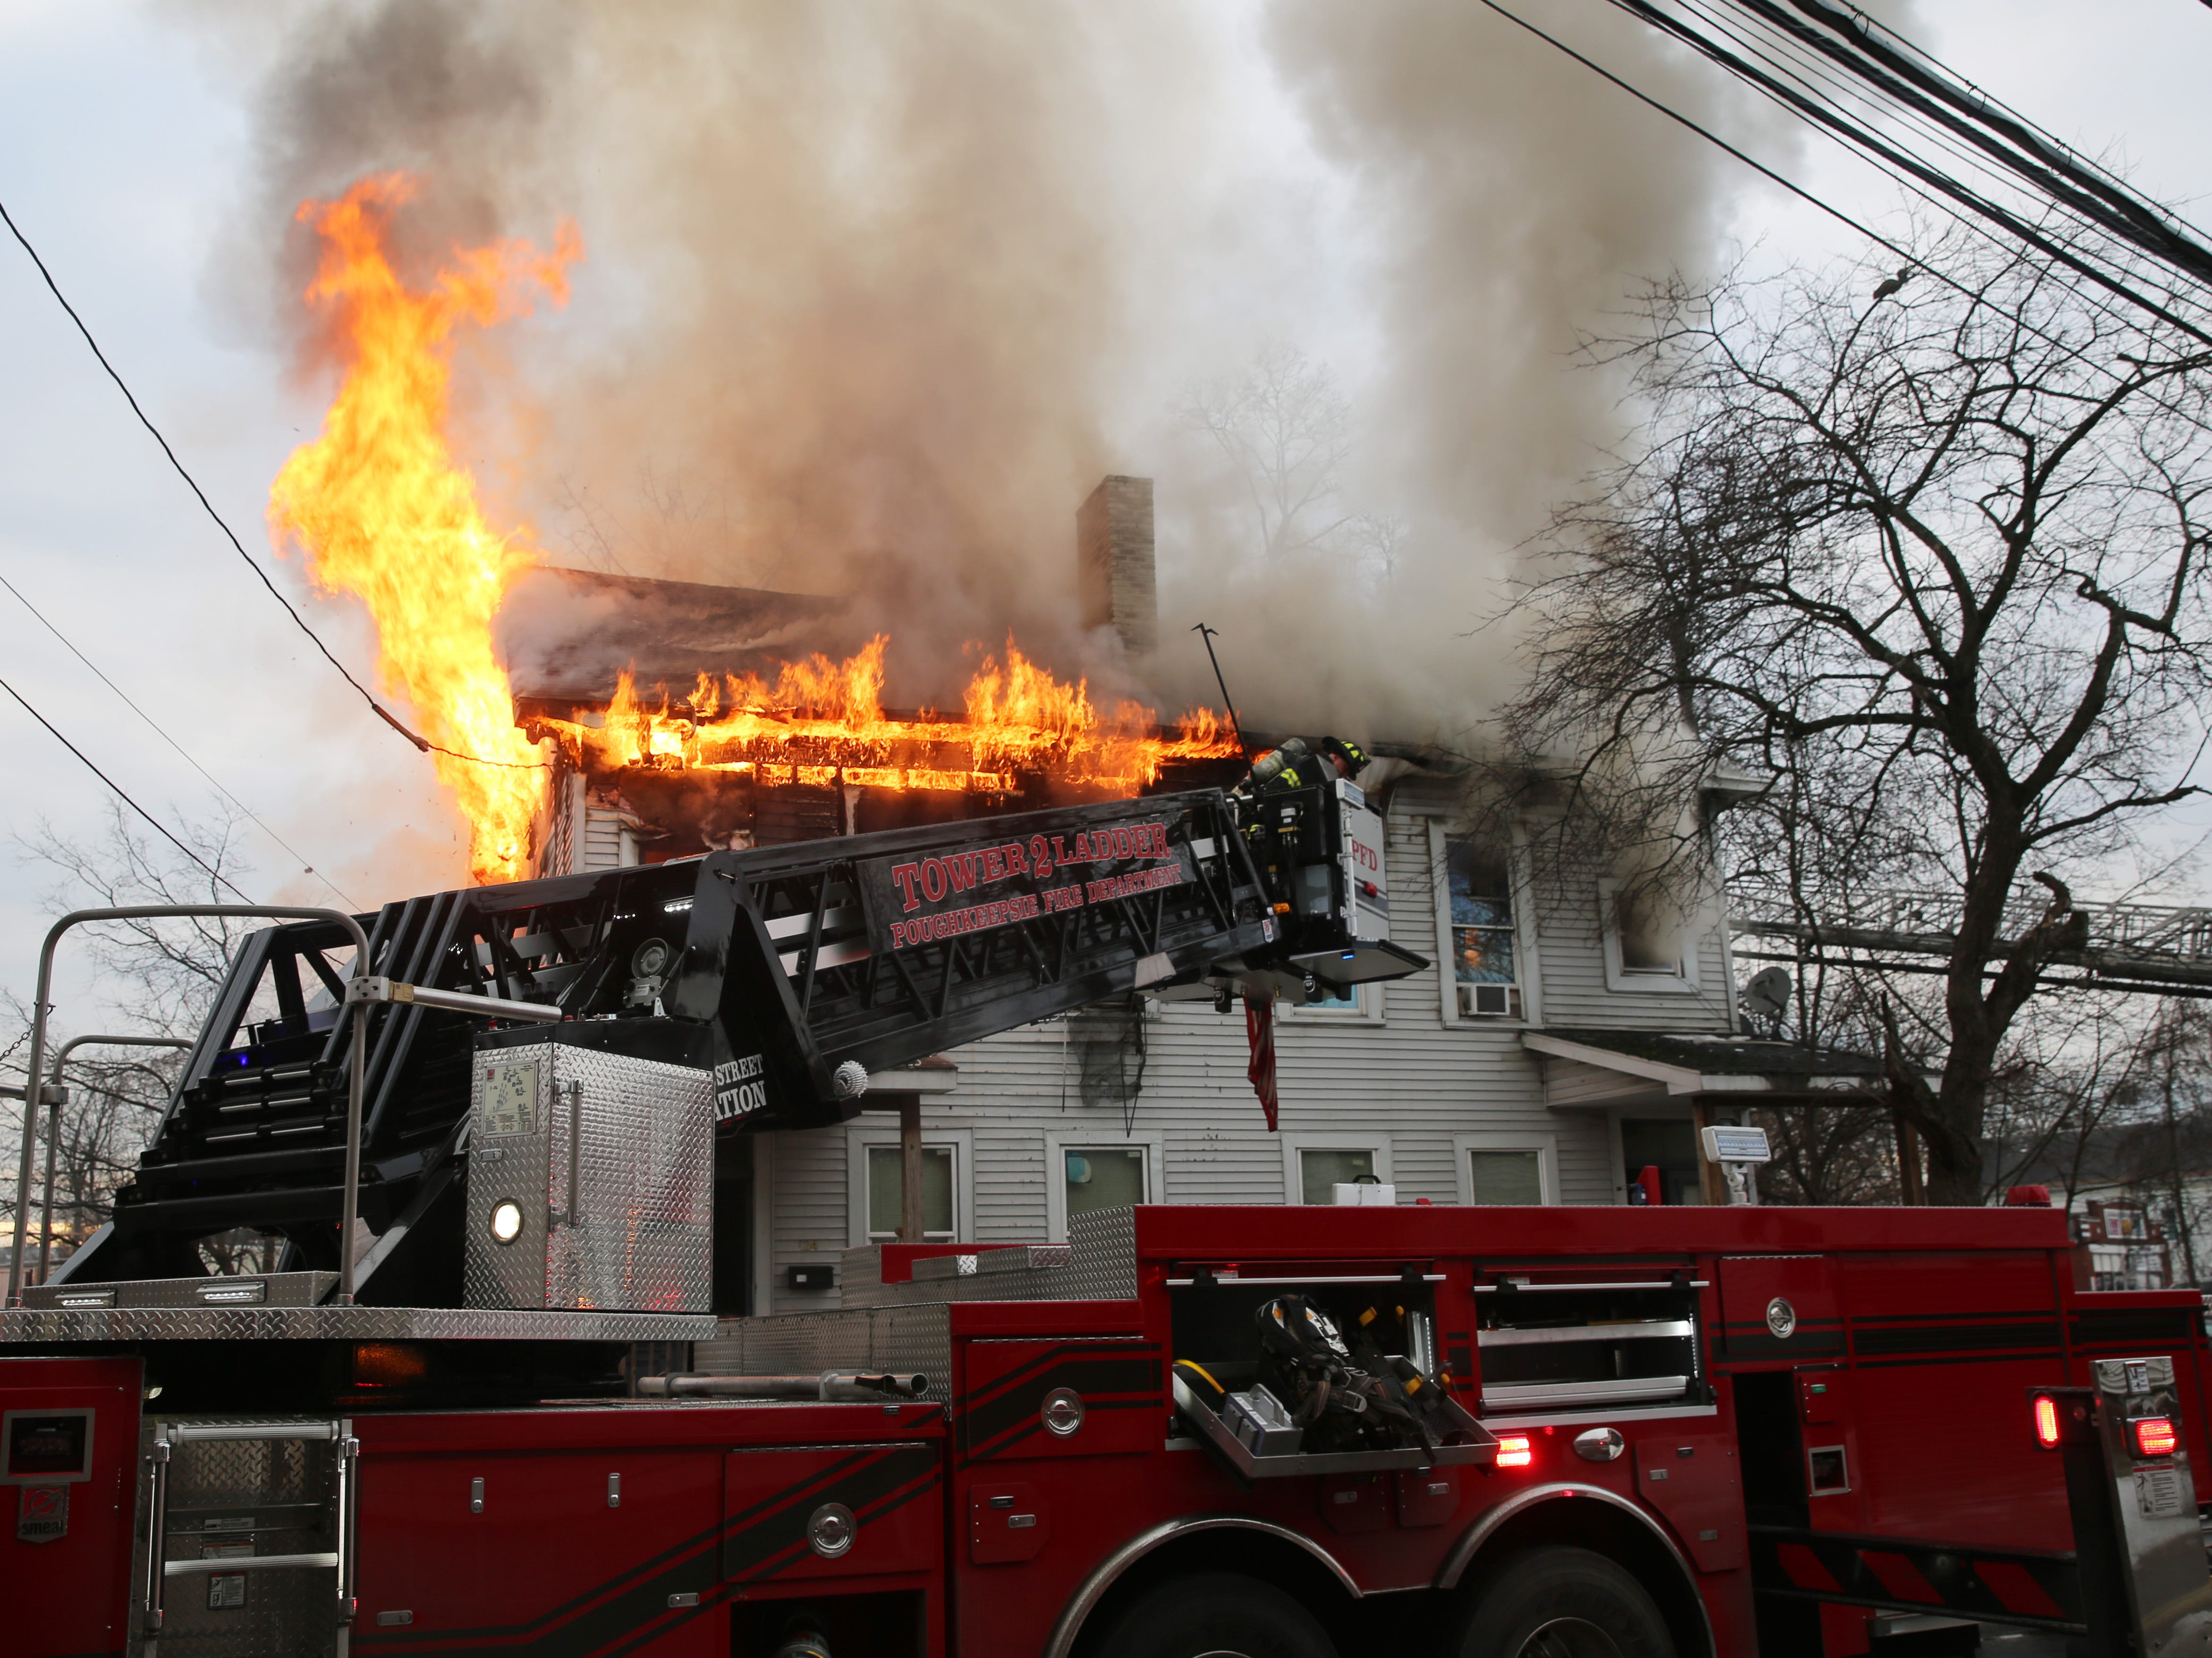 Poughkeepsie Fire Department Tower Ladder 2 is brought into service at a fire on Winnikee Avenue in the City of Poughkeepsie on Feb. 5, 2019.